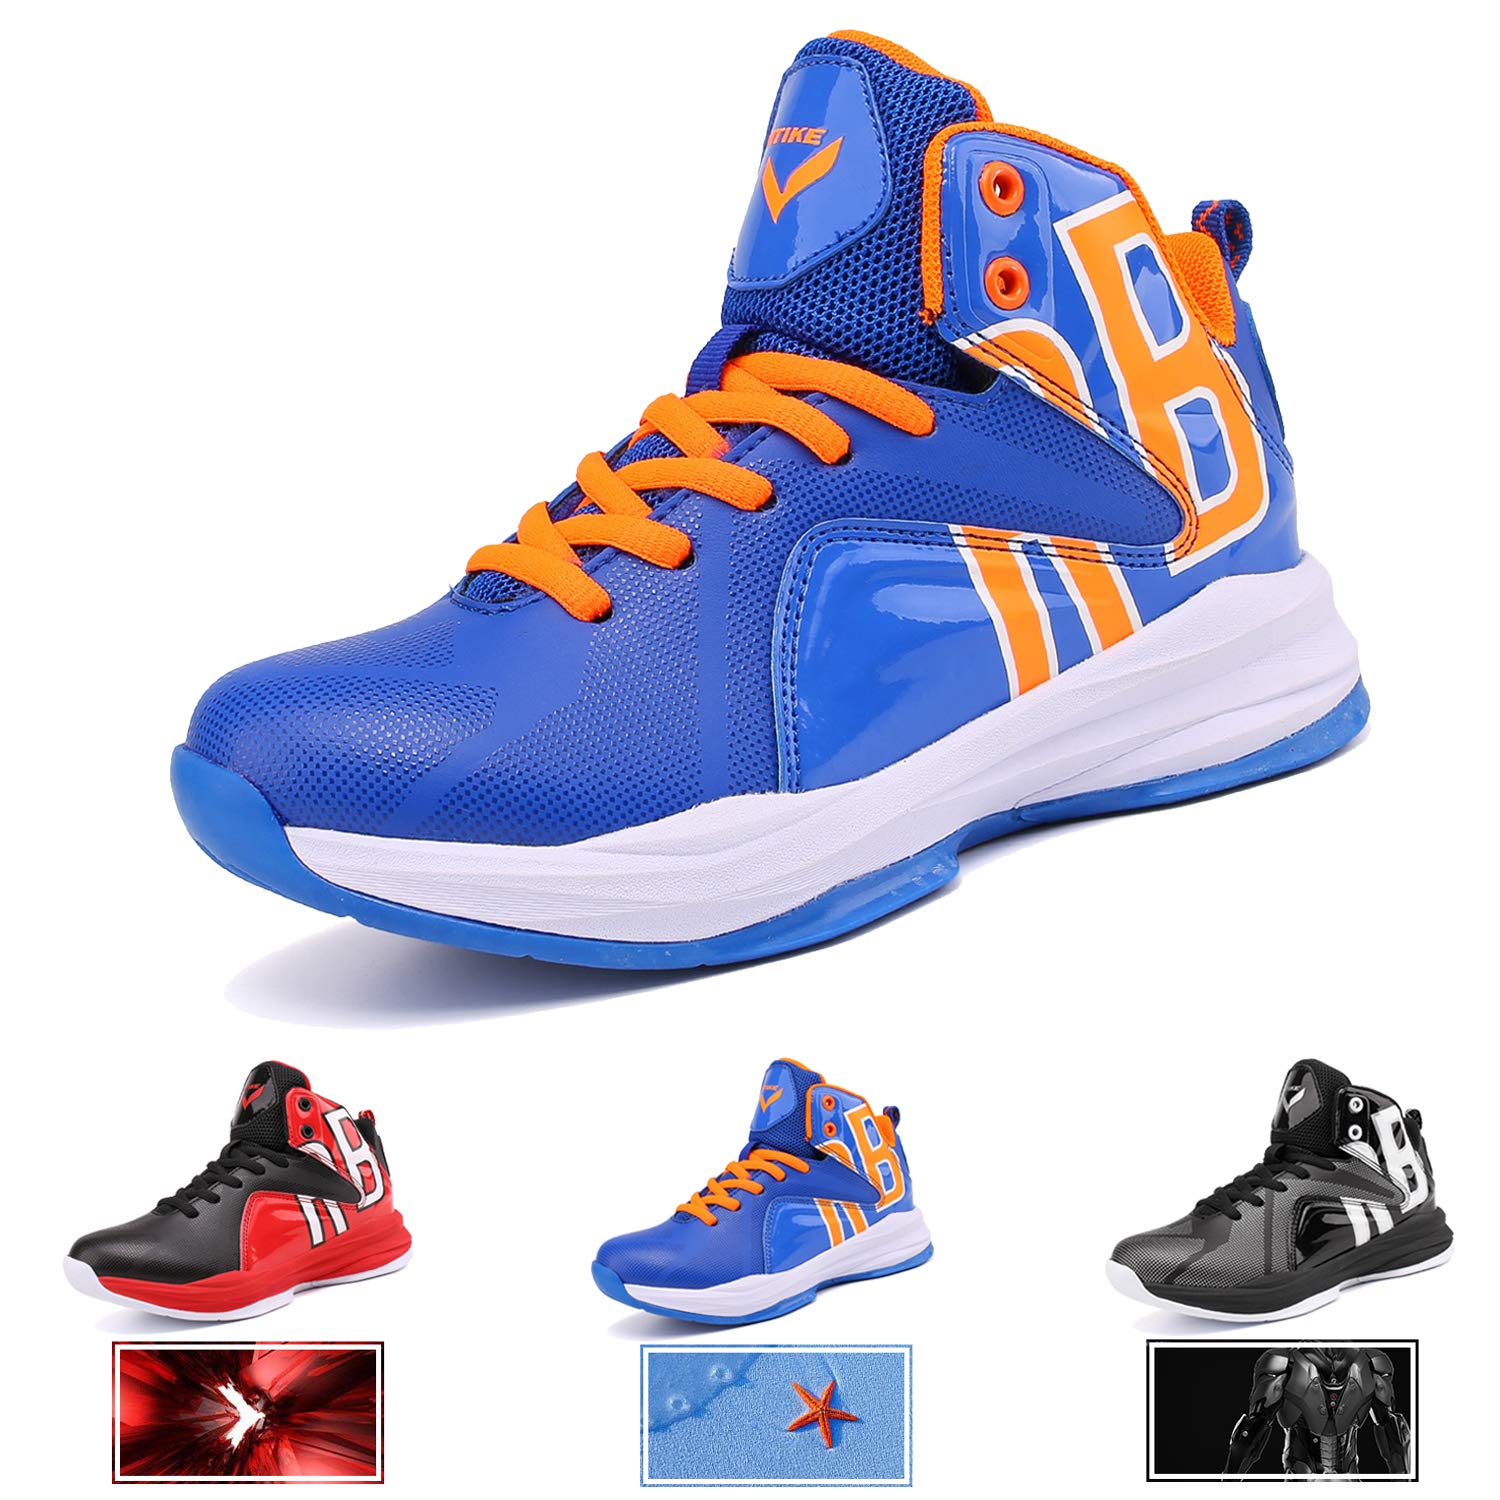 WETIKE Boy's Basketball Shoes Lace Up High-Top Sneaker Outdoor Trainers for Unisex Kids Durable Sport Shoes (Little Kid/Big Kid) (1M US Little Kid, Lucky Blue)